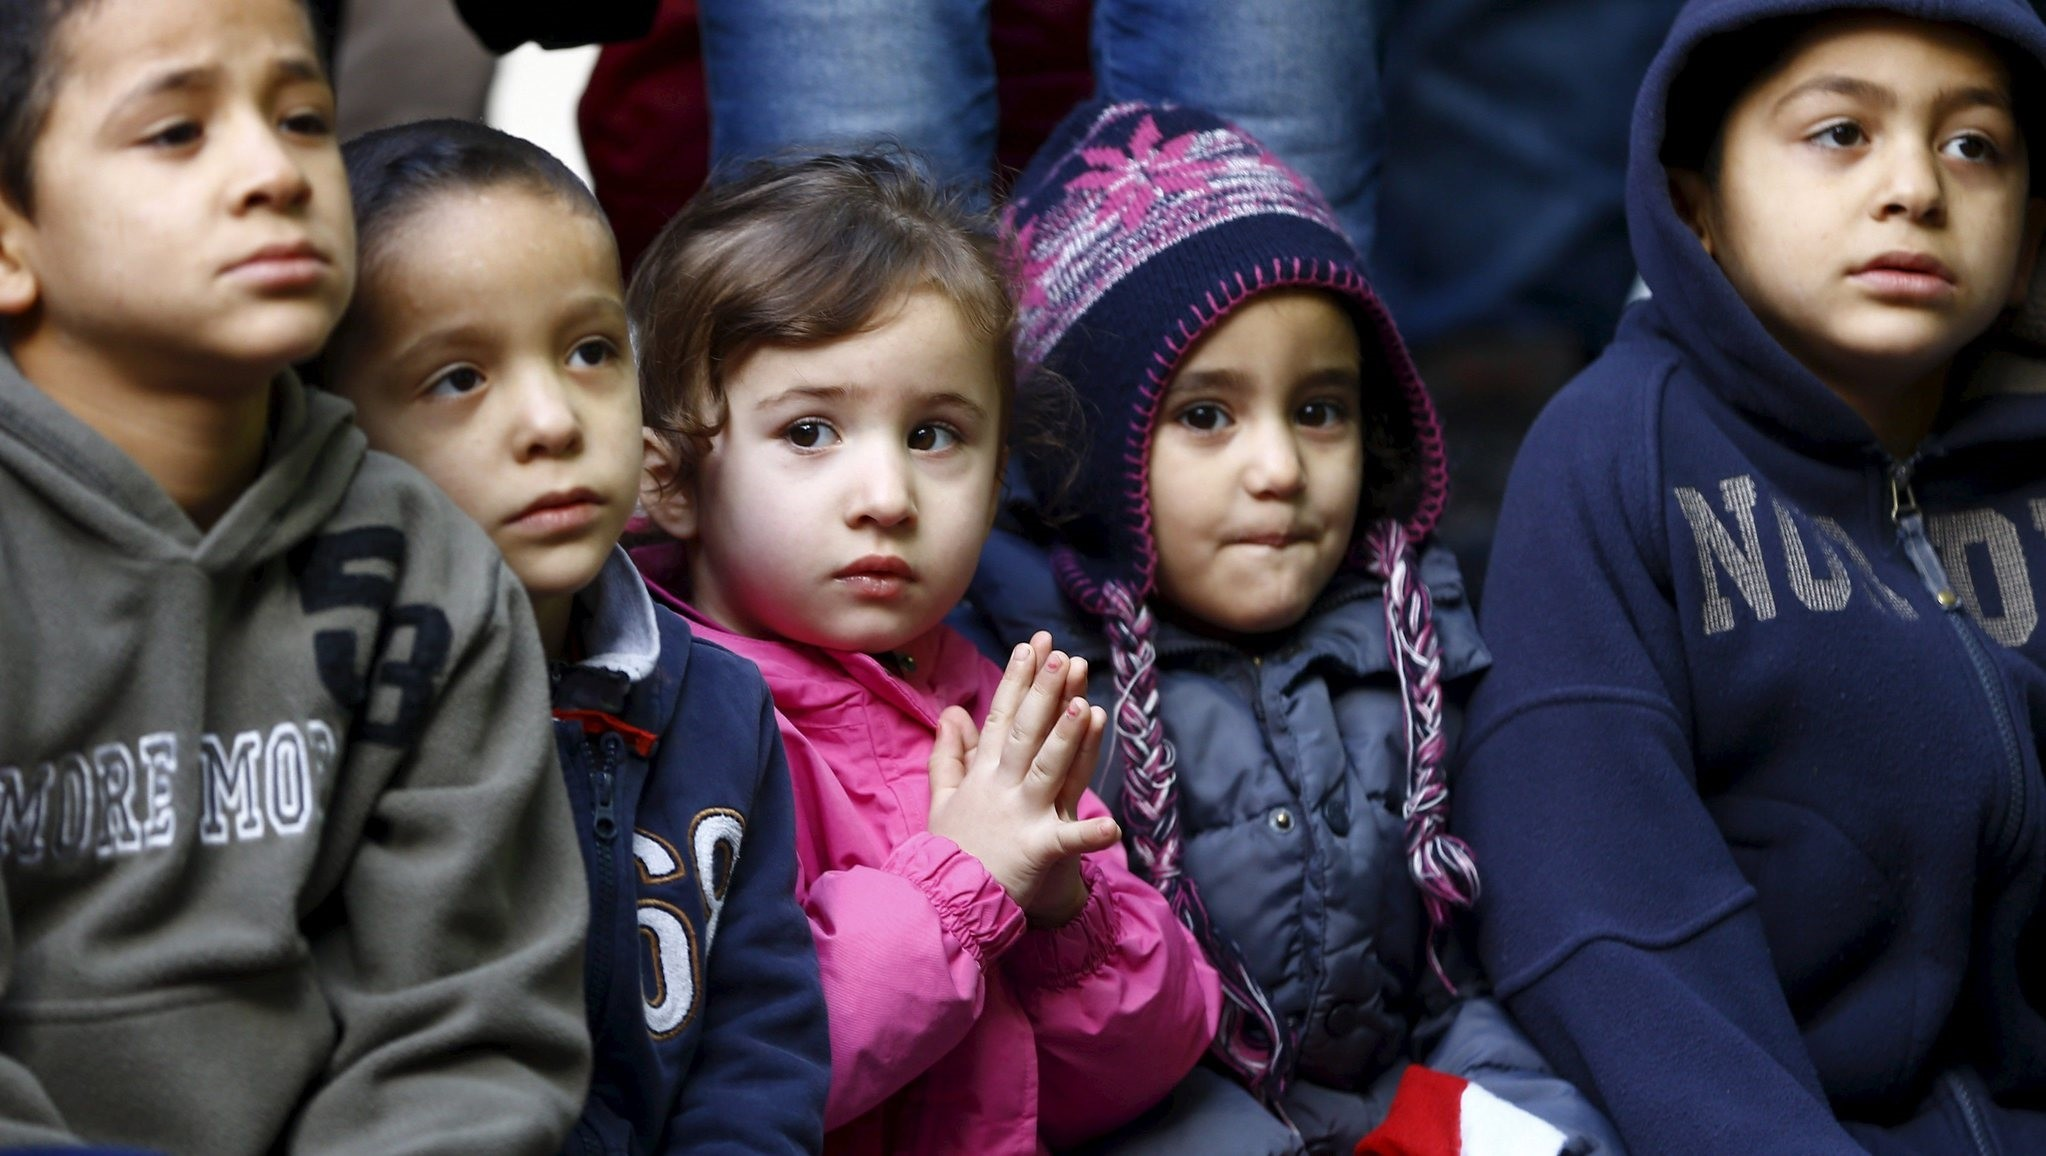 The migrant children in Europe have recently been facing deadly force from police.